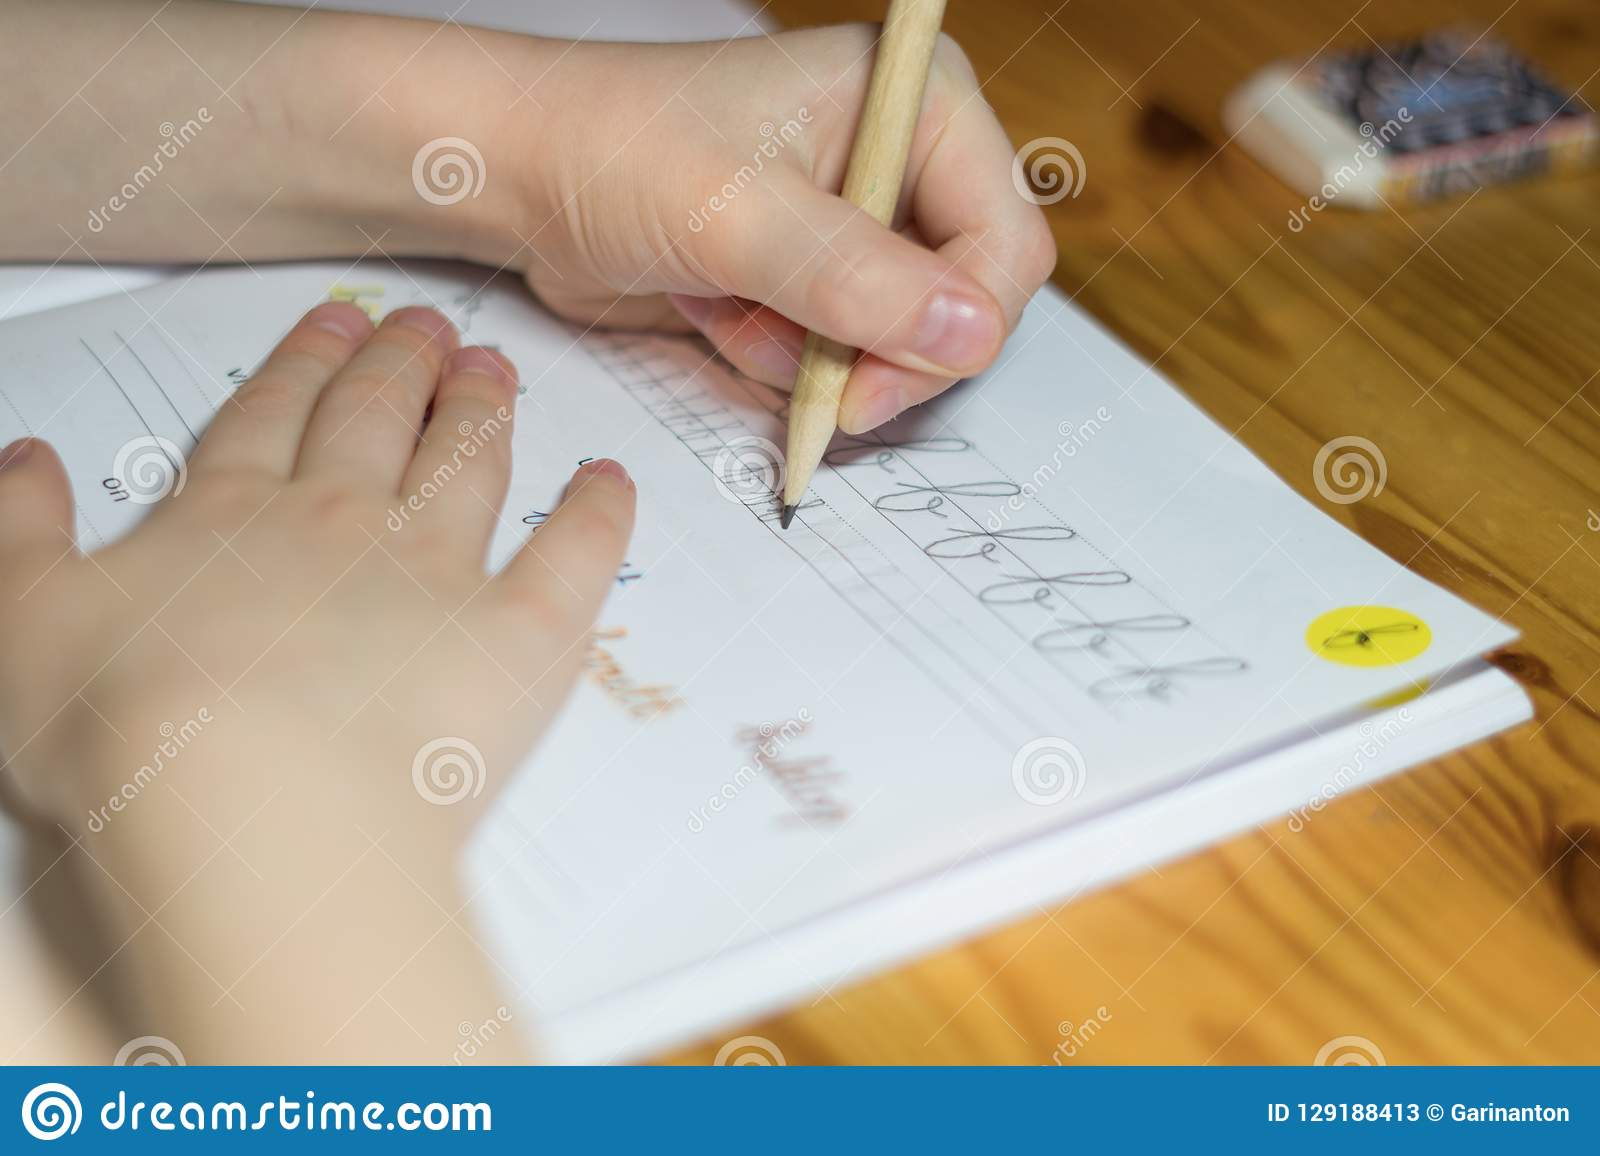 A six year old girl is practicing writing in a notebook.